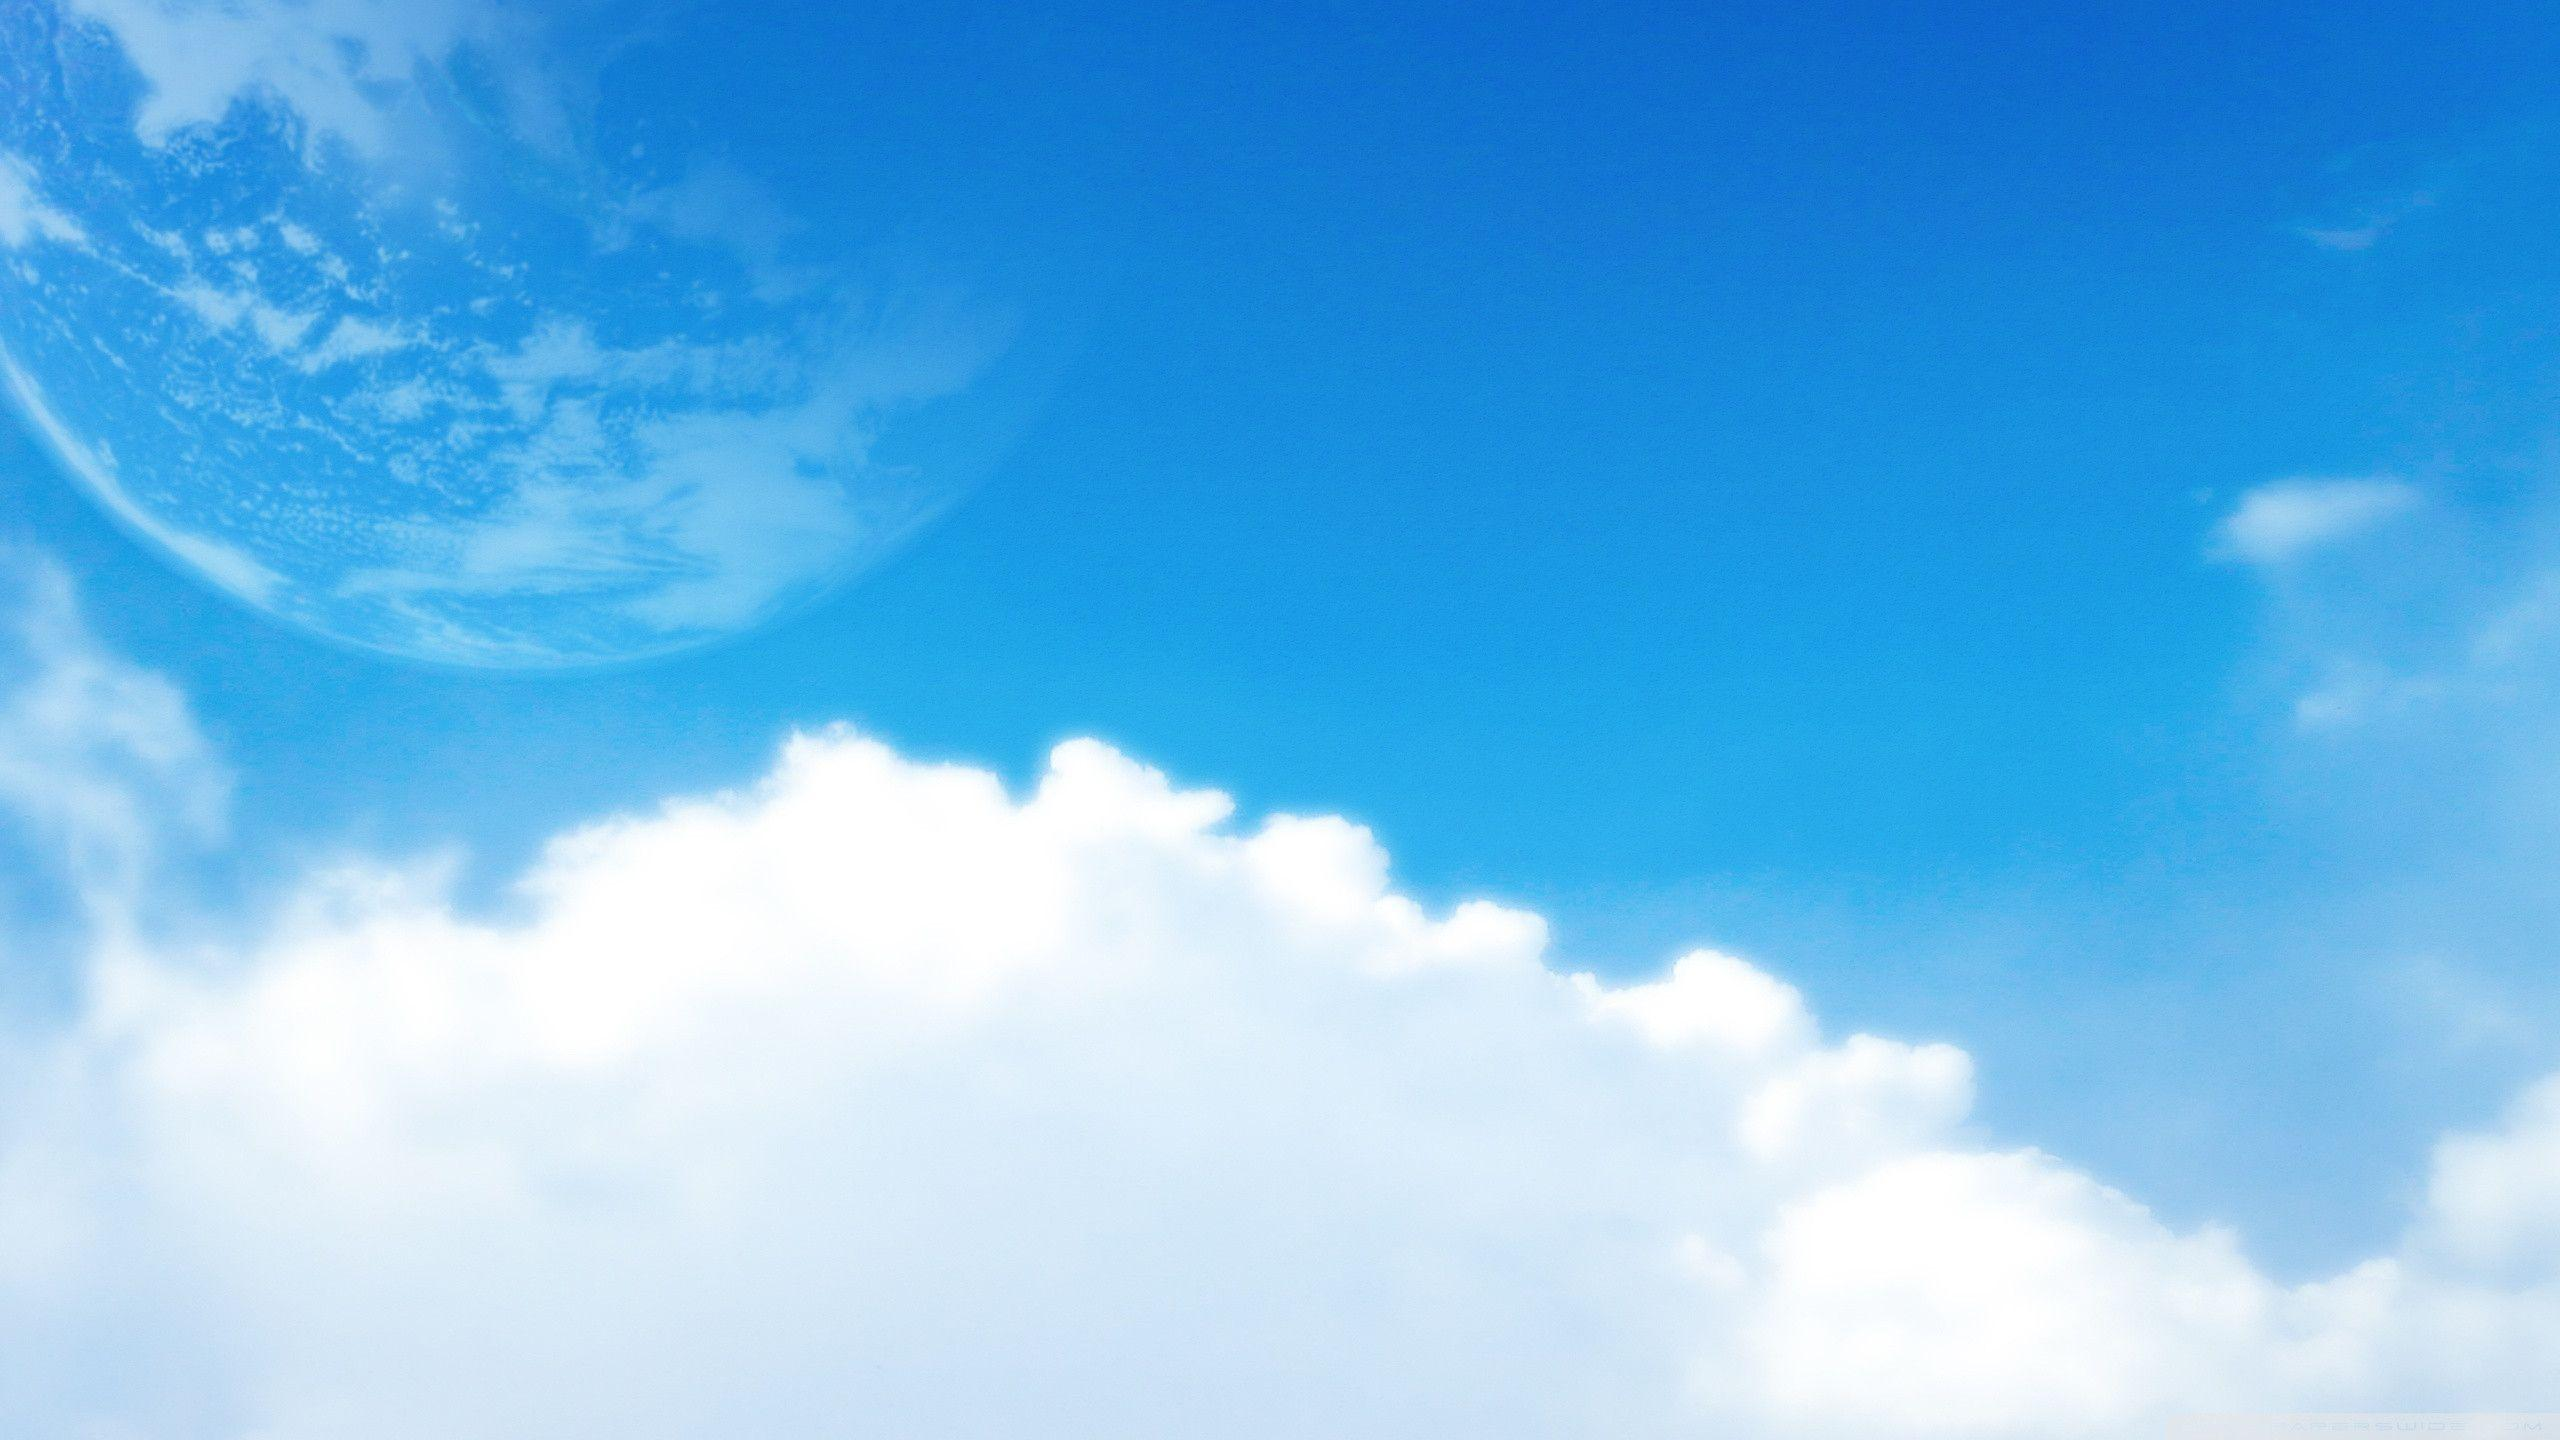 Blue Sky Wallpapers 2560x1440